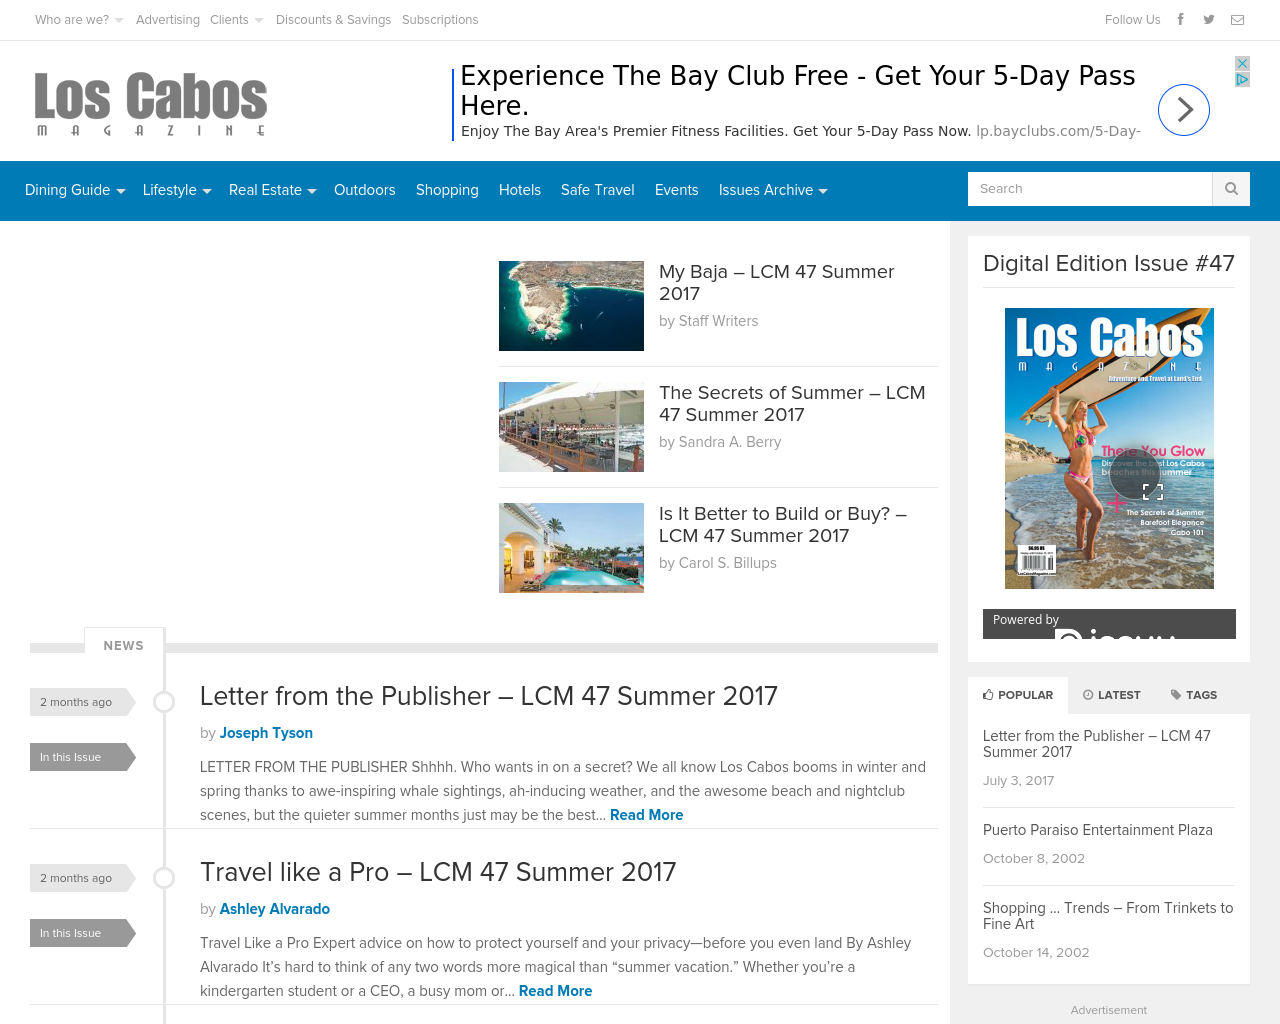 Los-Cabos-Magazine-Advertising-Reviews-Pricing